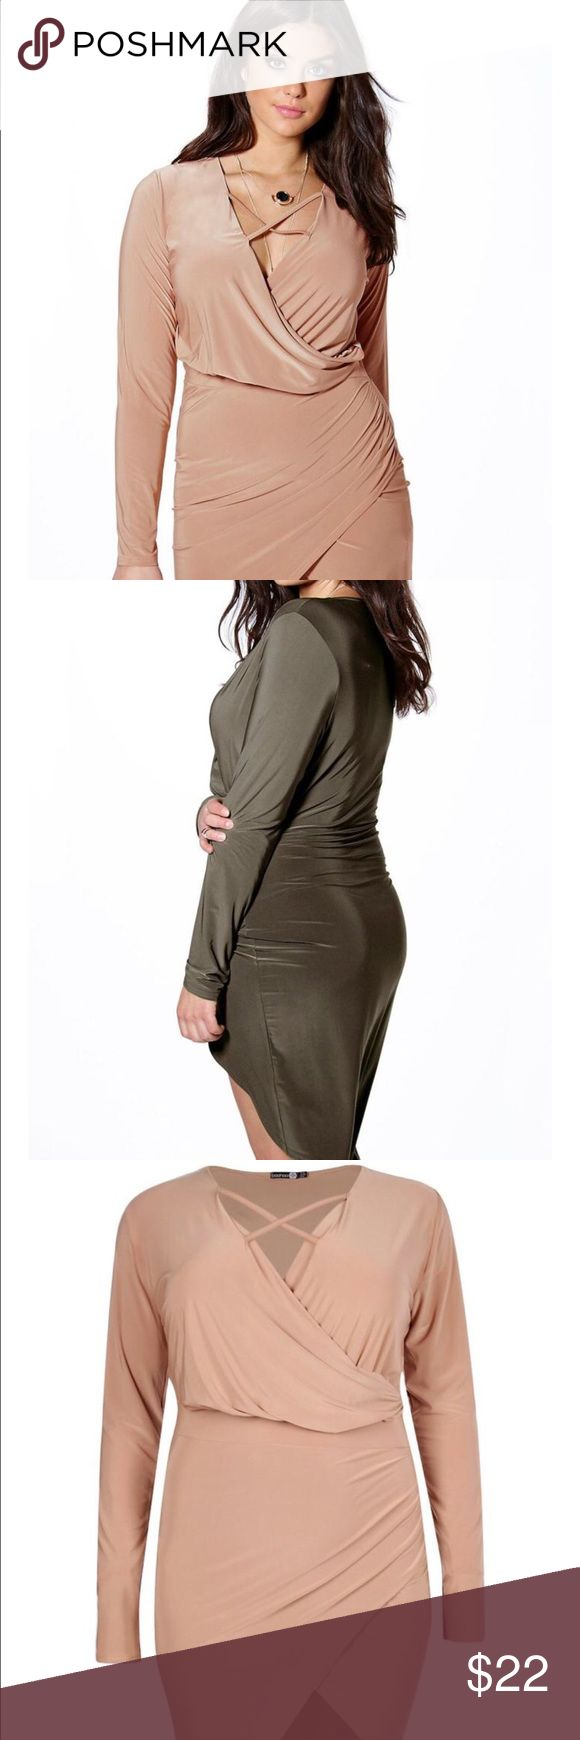 Plus size wrap dress Long sleeve wrap dress with lace up detail in the front and asymmetrical design. One is camel and the other is olive green as pictured Boohoo Plus Dresses Asymmetrical